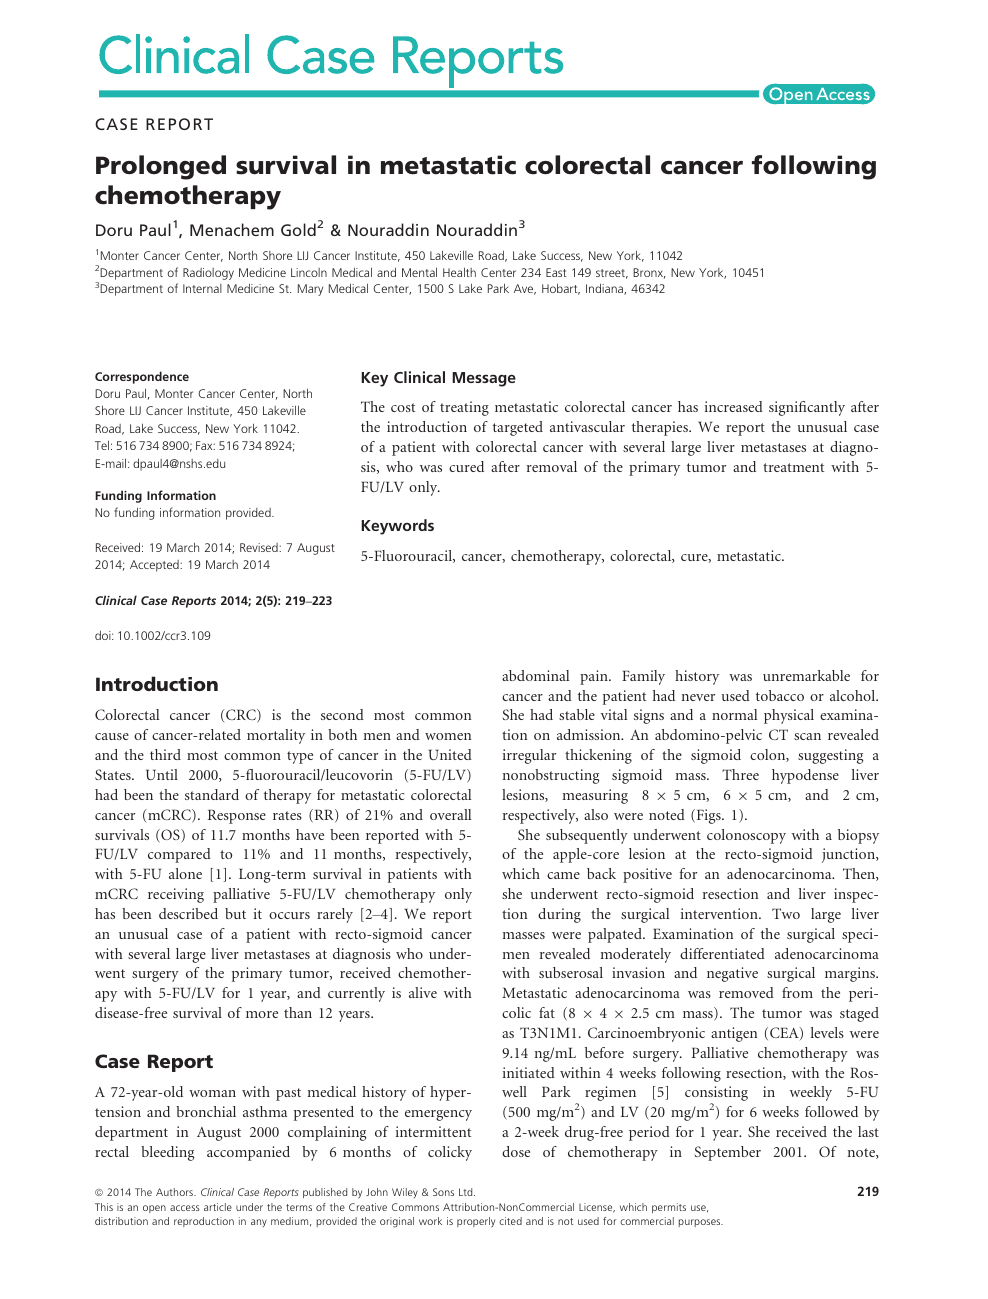 Prolonged Survival In Metastatic Colorectal Cancer Following Chemotherapy Topic Of Research Paper In Clinical Medicine Download Scholarly Article Pdf And Read For Free On Cyberleninka Open Science Hub